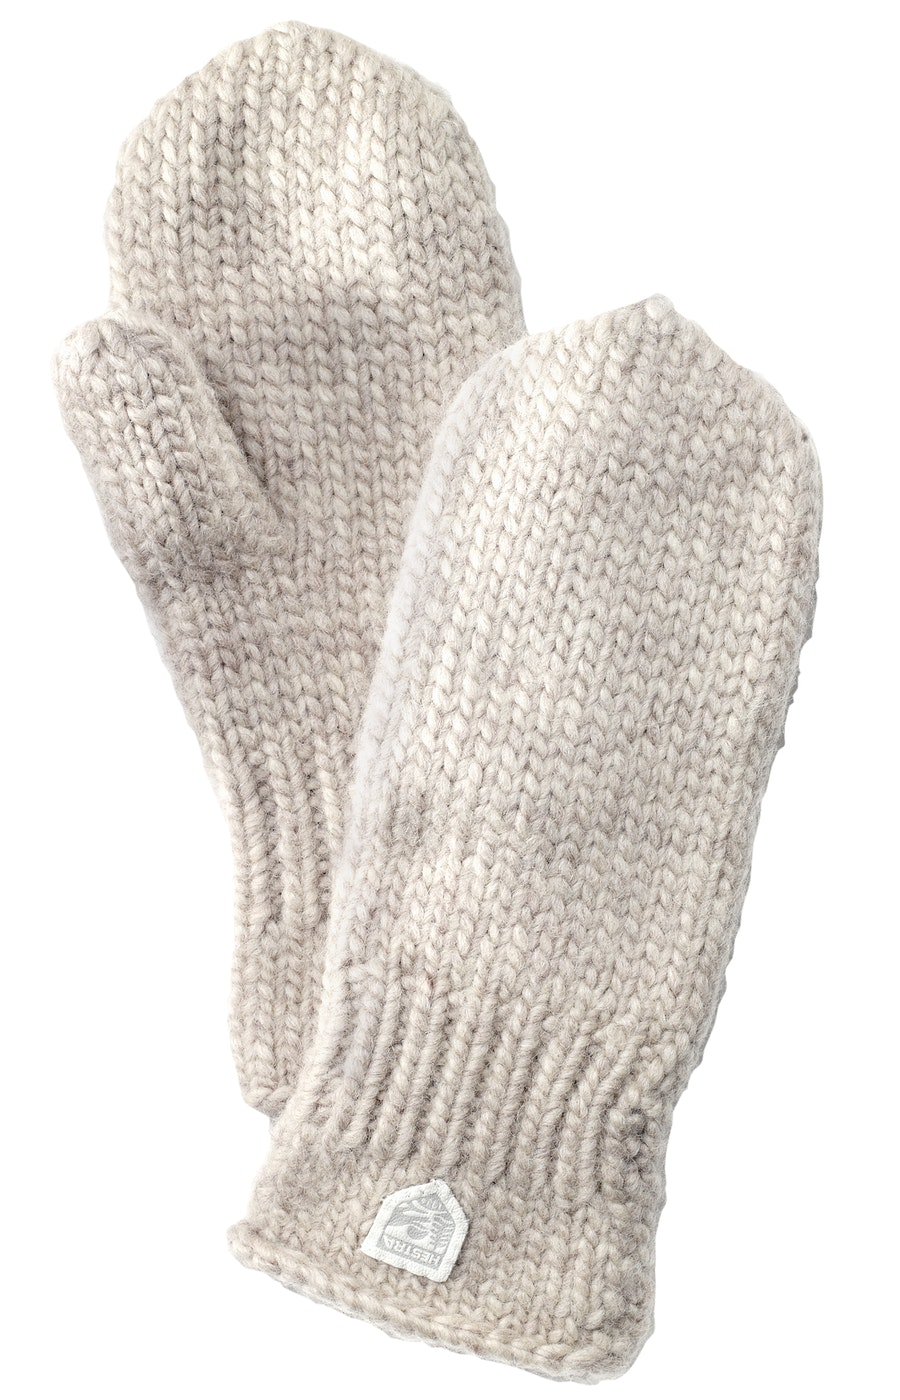 Product image for 63621 Kebnekaise Wool Mitt